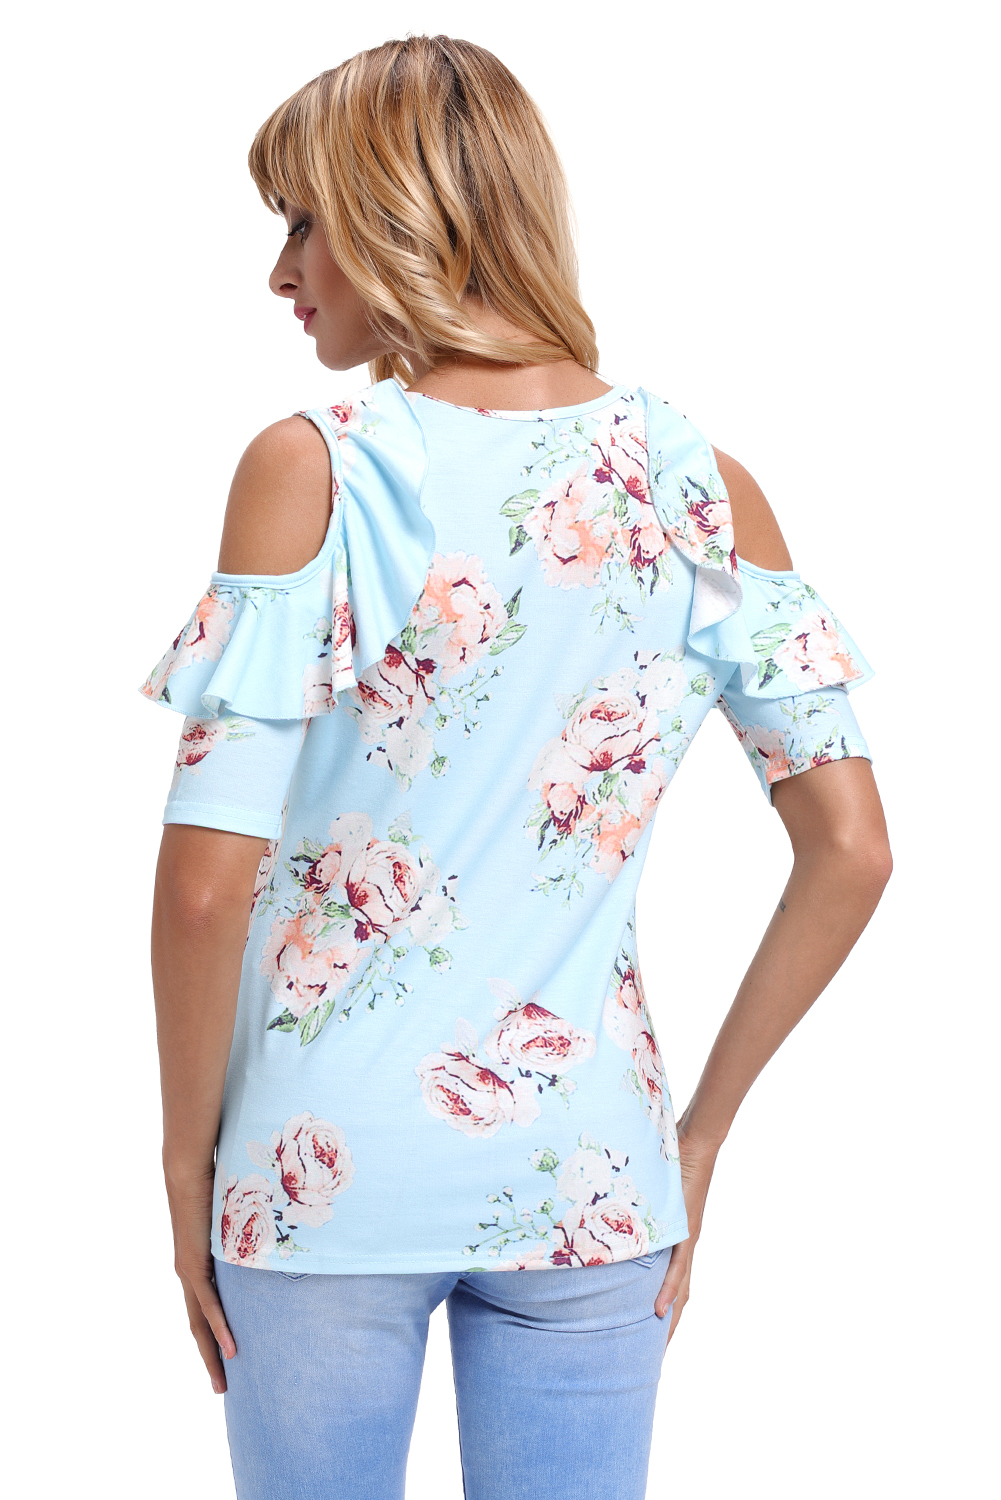 5ff7f6fb1ba Light blue floral cold shoulder top with ruffle sleeve womens shirt ...